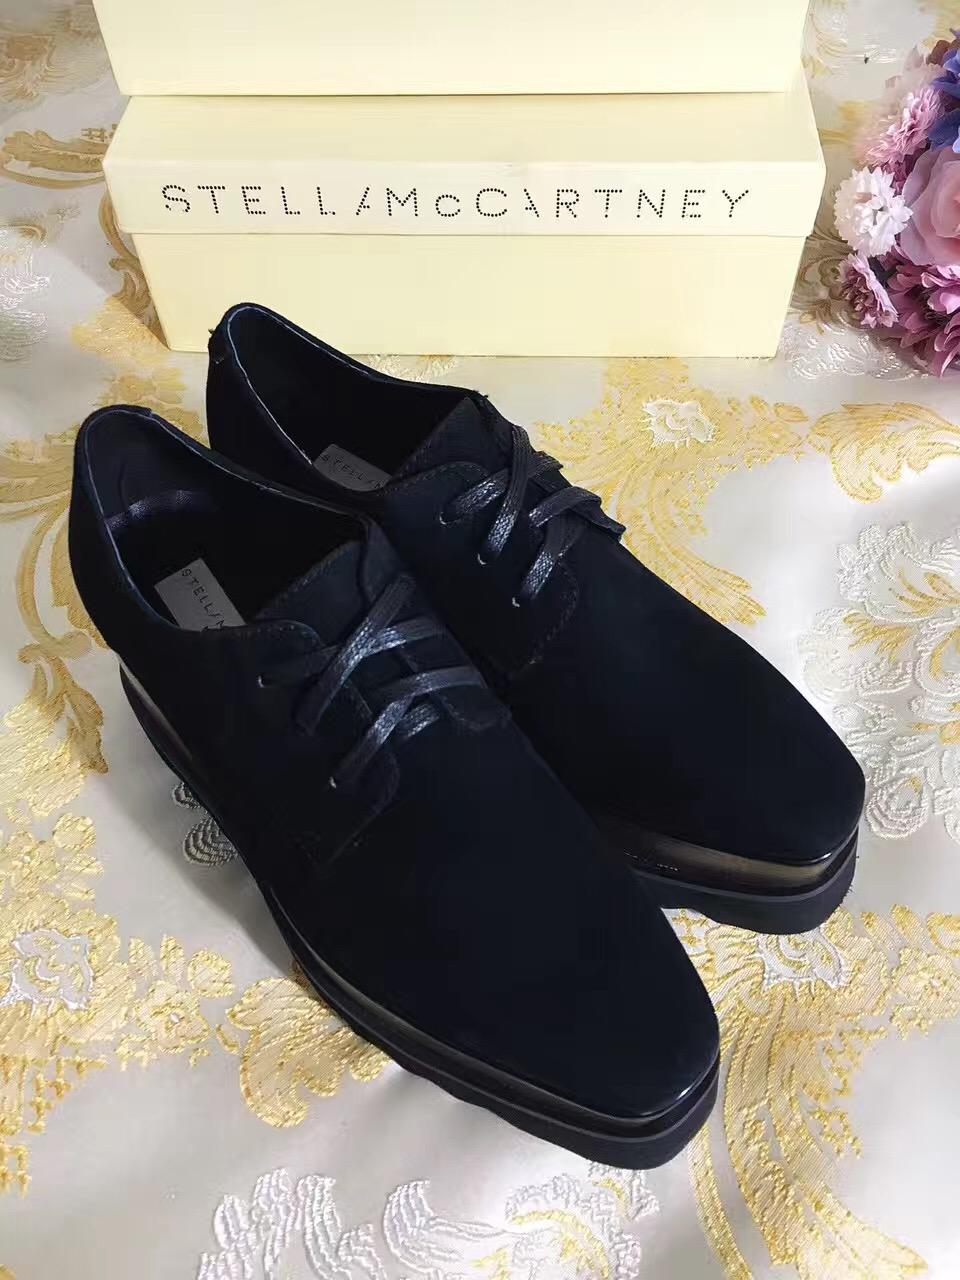 b5b80b3537e4 Stella Mccartney Platform Shoes Elyse Black Suede Sheepskin Leather Fashion  Lace Up Round Toe Comfortable Shoes Discount Shoes From Luischen